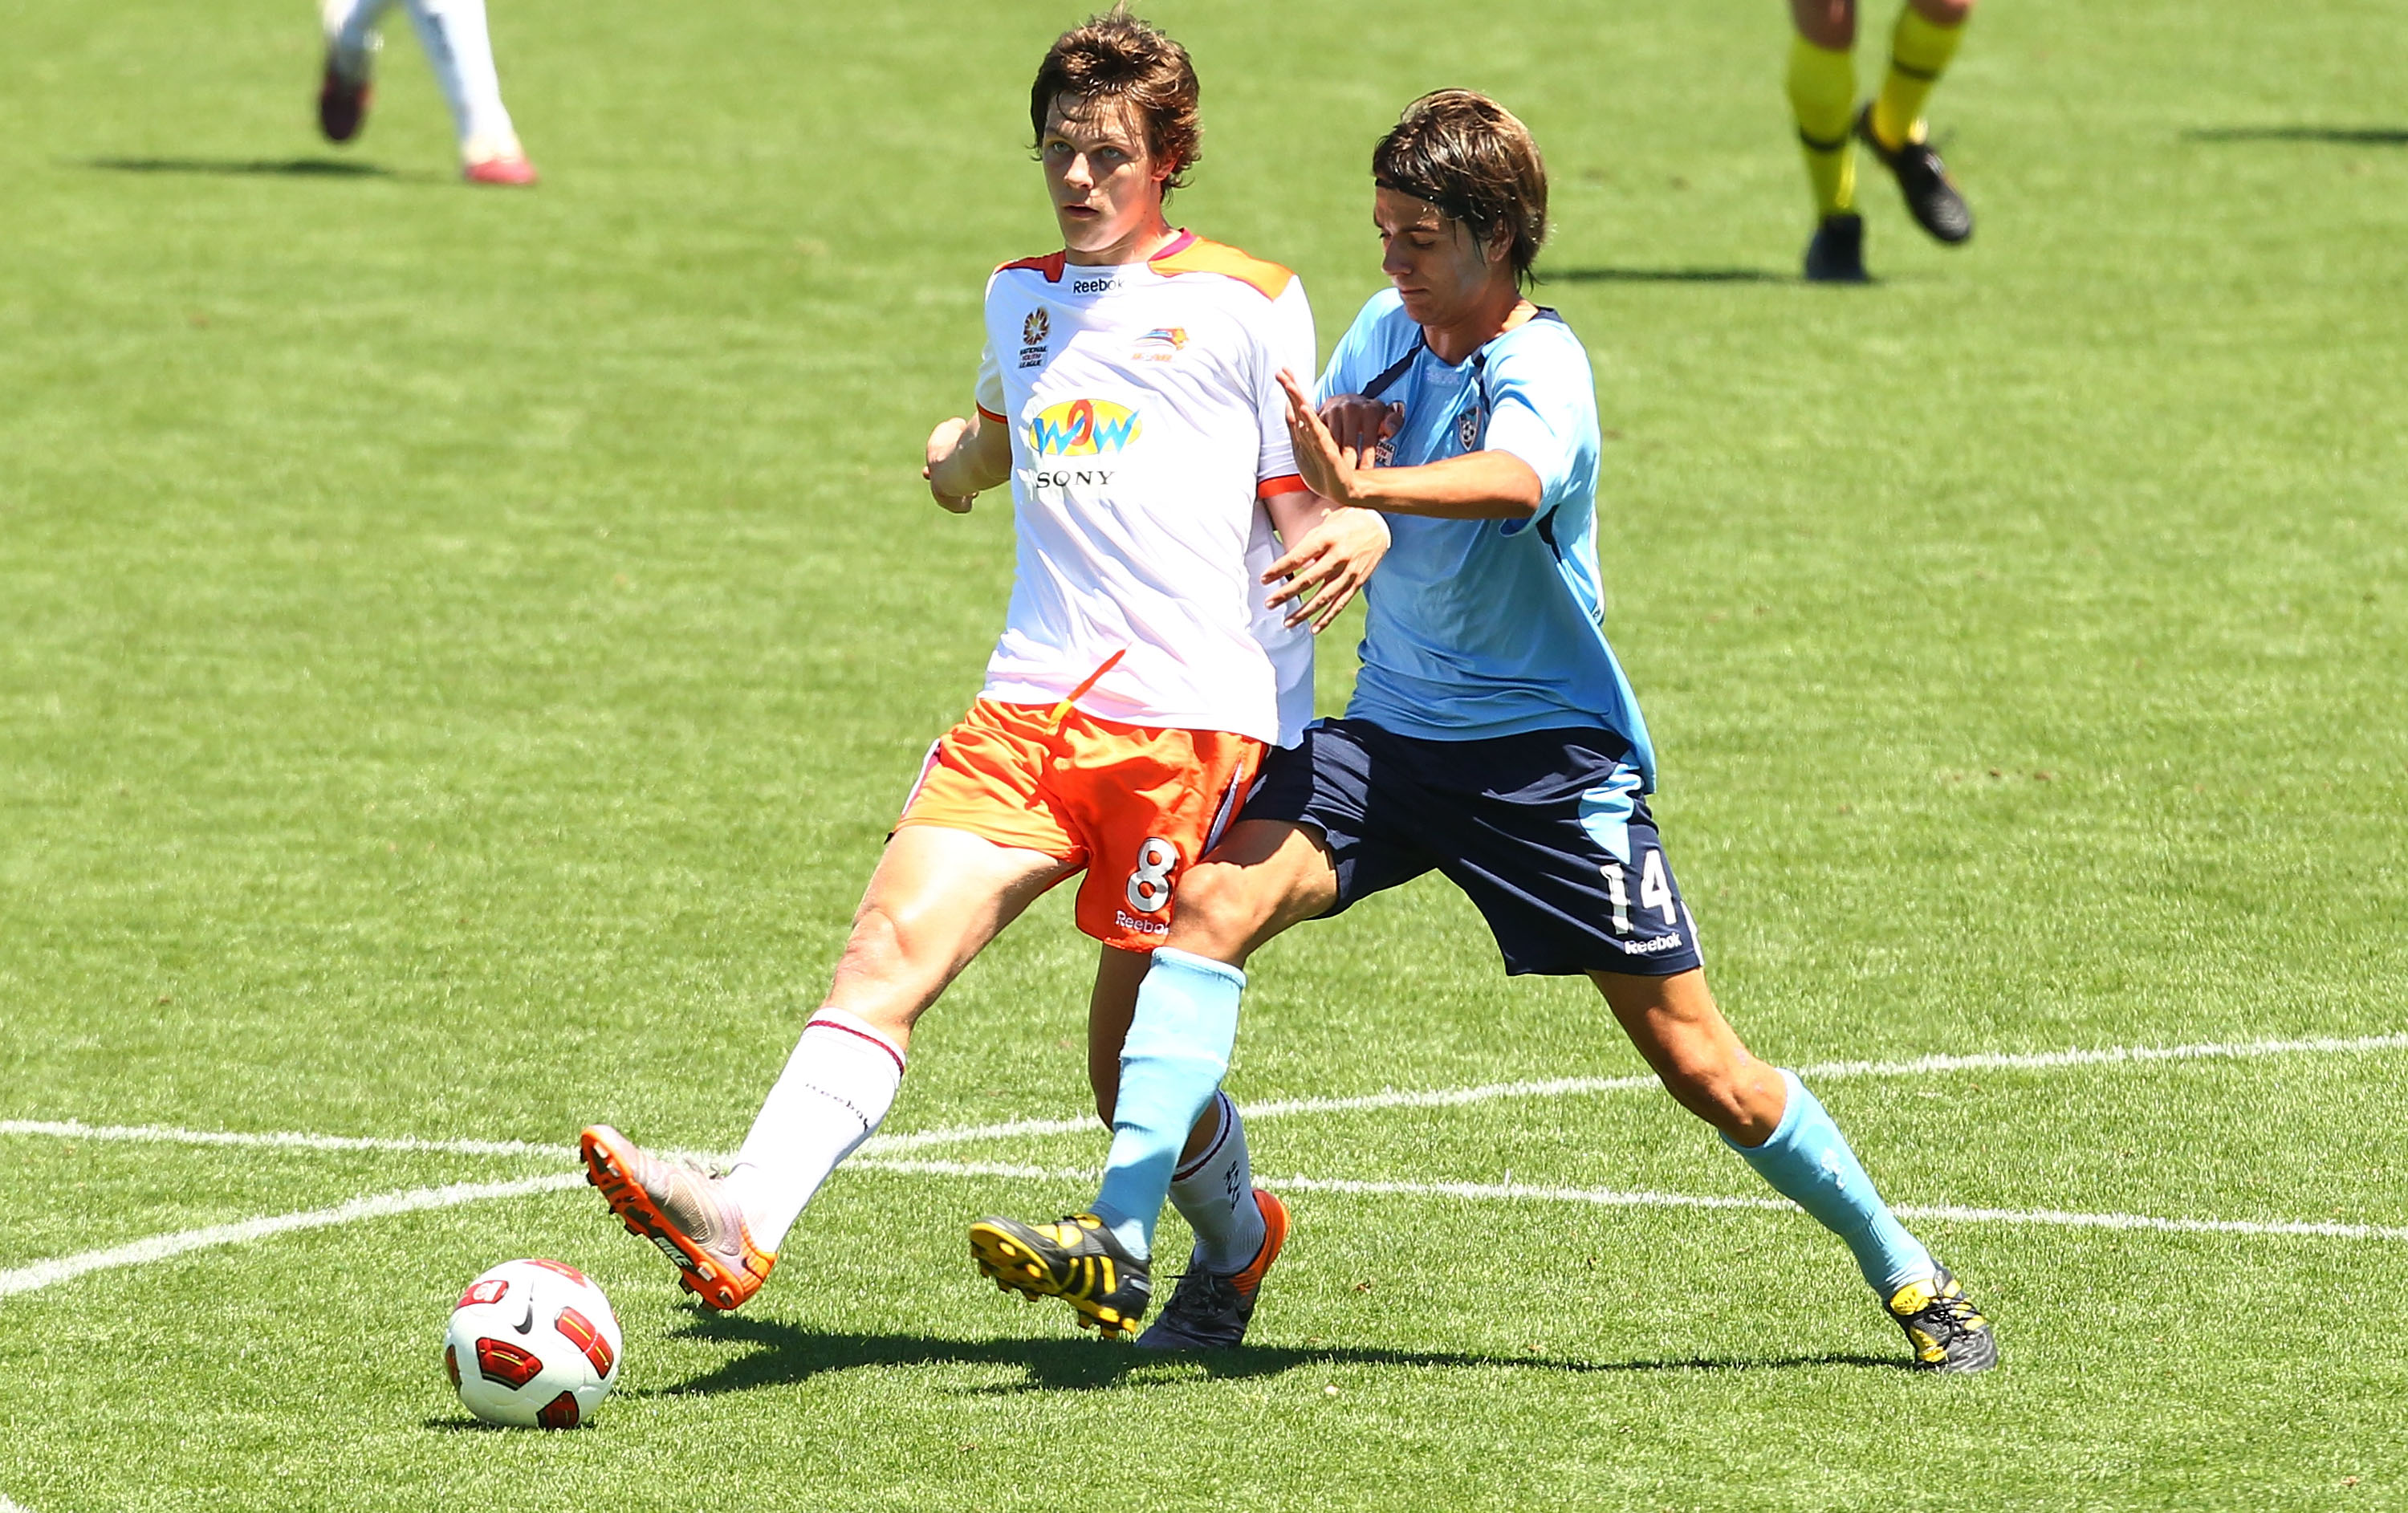 WOLLONGONG, AUSTRALIA - DECEMBER 11: James Donachie of the Roar and Peter Simonski of Sydney contest possession during the round 13 Youth League match between Sydney FC and the Brisbane Roar at WIN Stadium on December 11, 2010 in Wollongong, Australia.  (